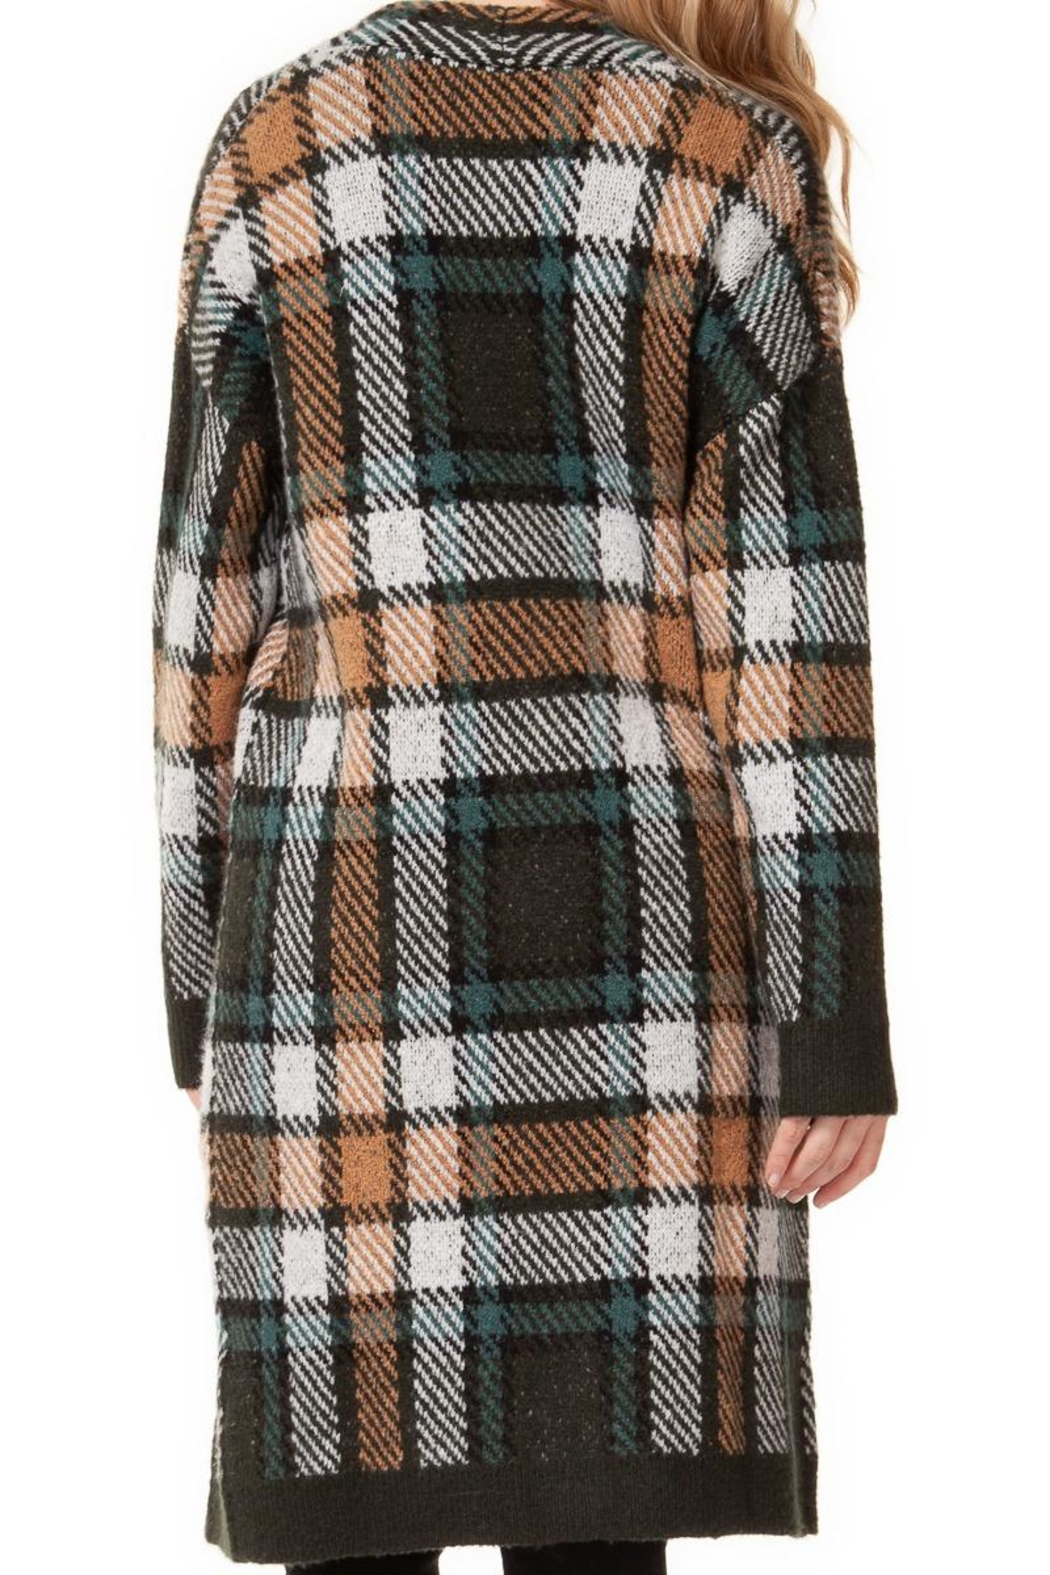 Dex/Black Tape Plaid Cozy Sweater - Front Cropped Image